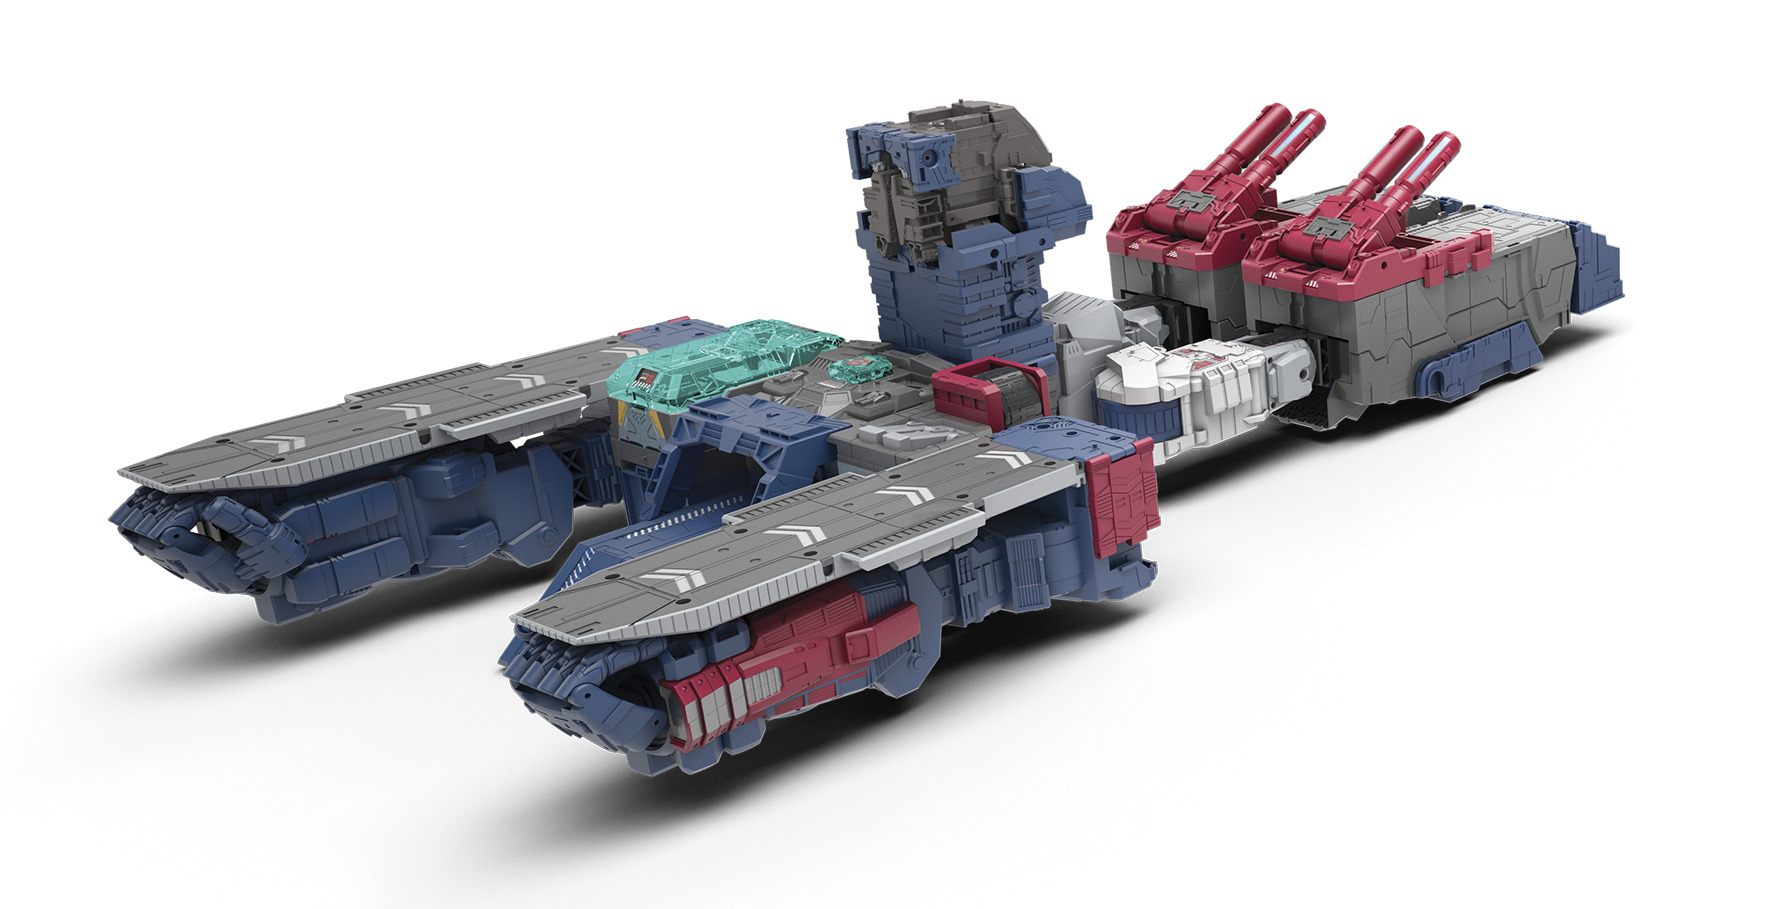 Fortress Maximus Battleship